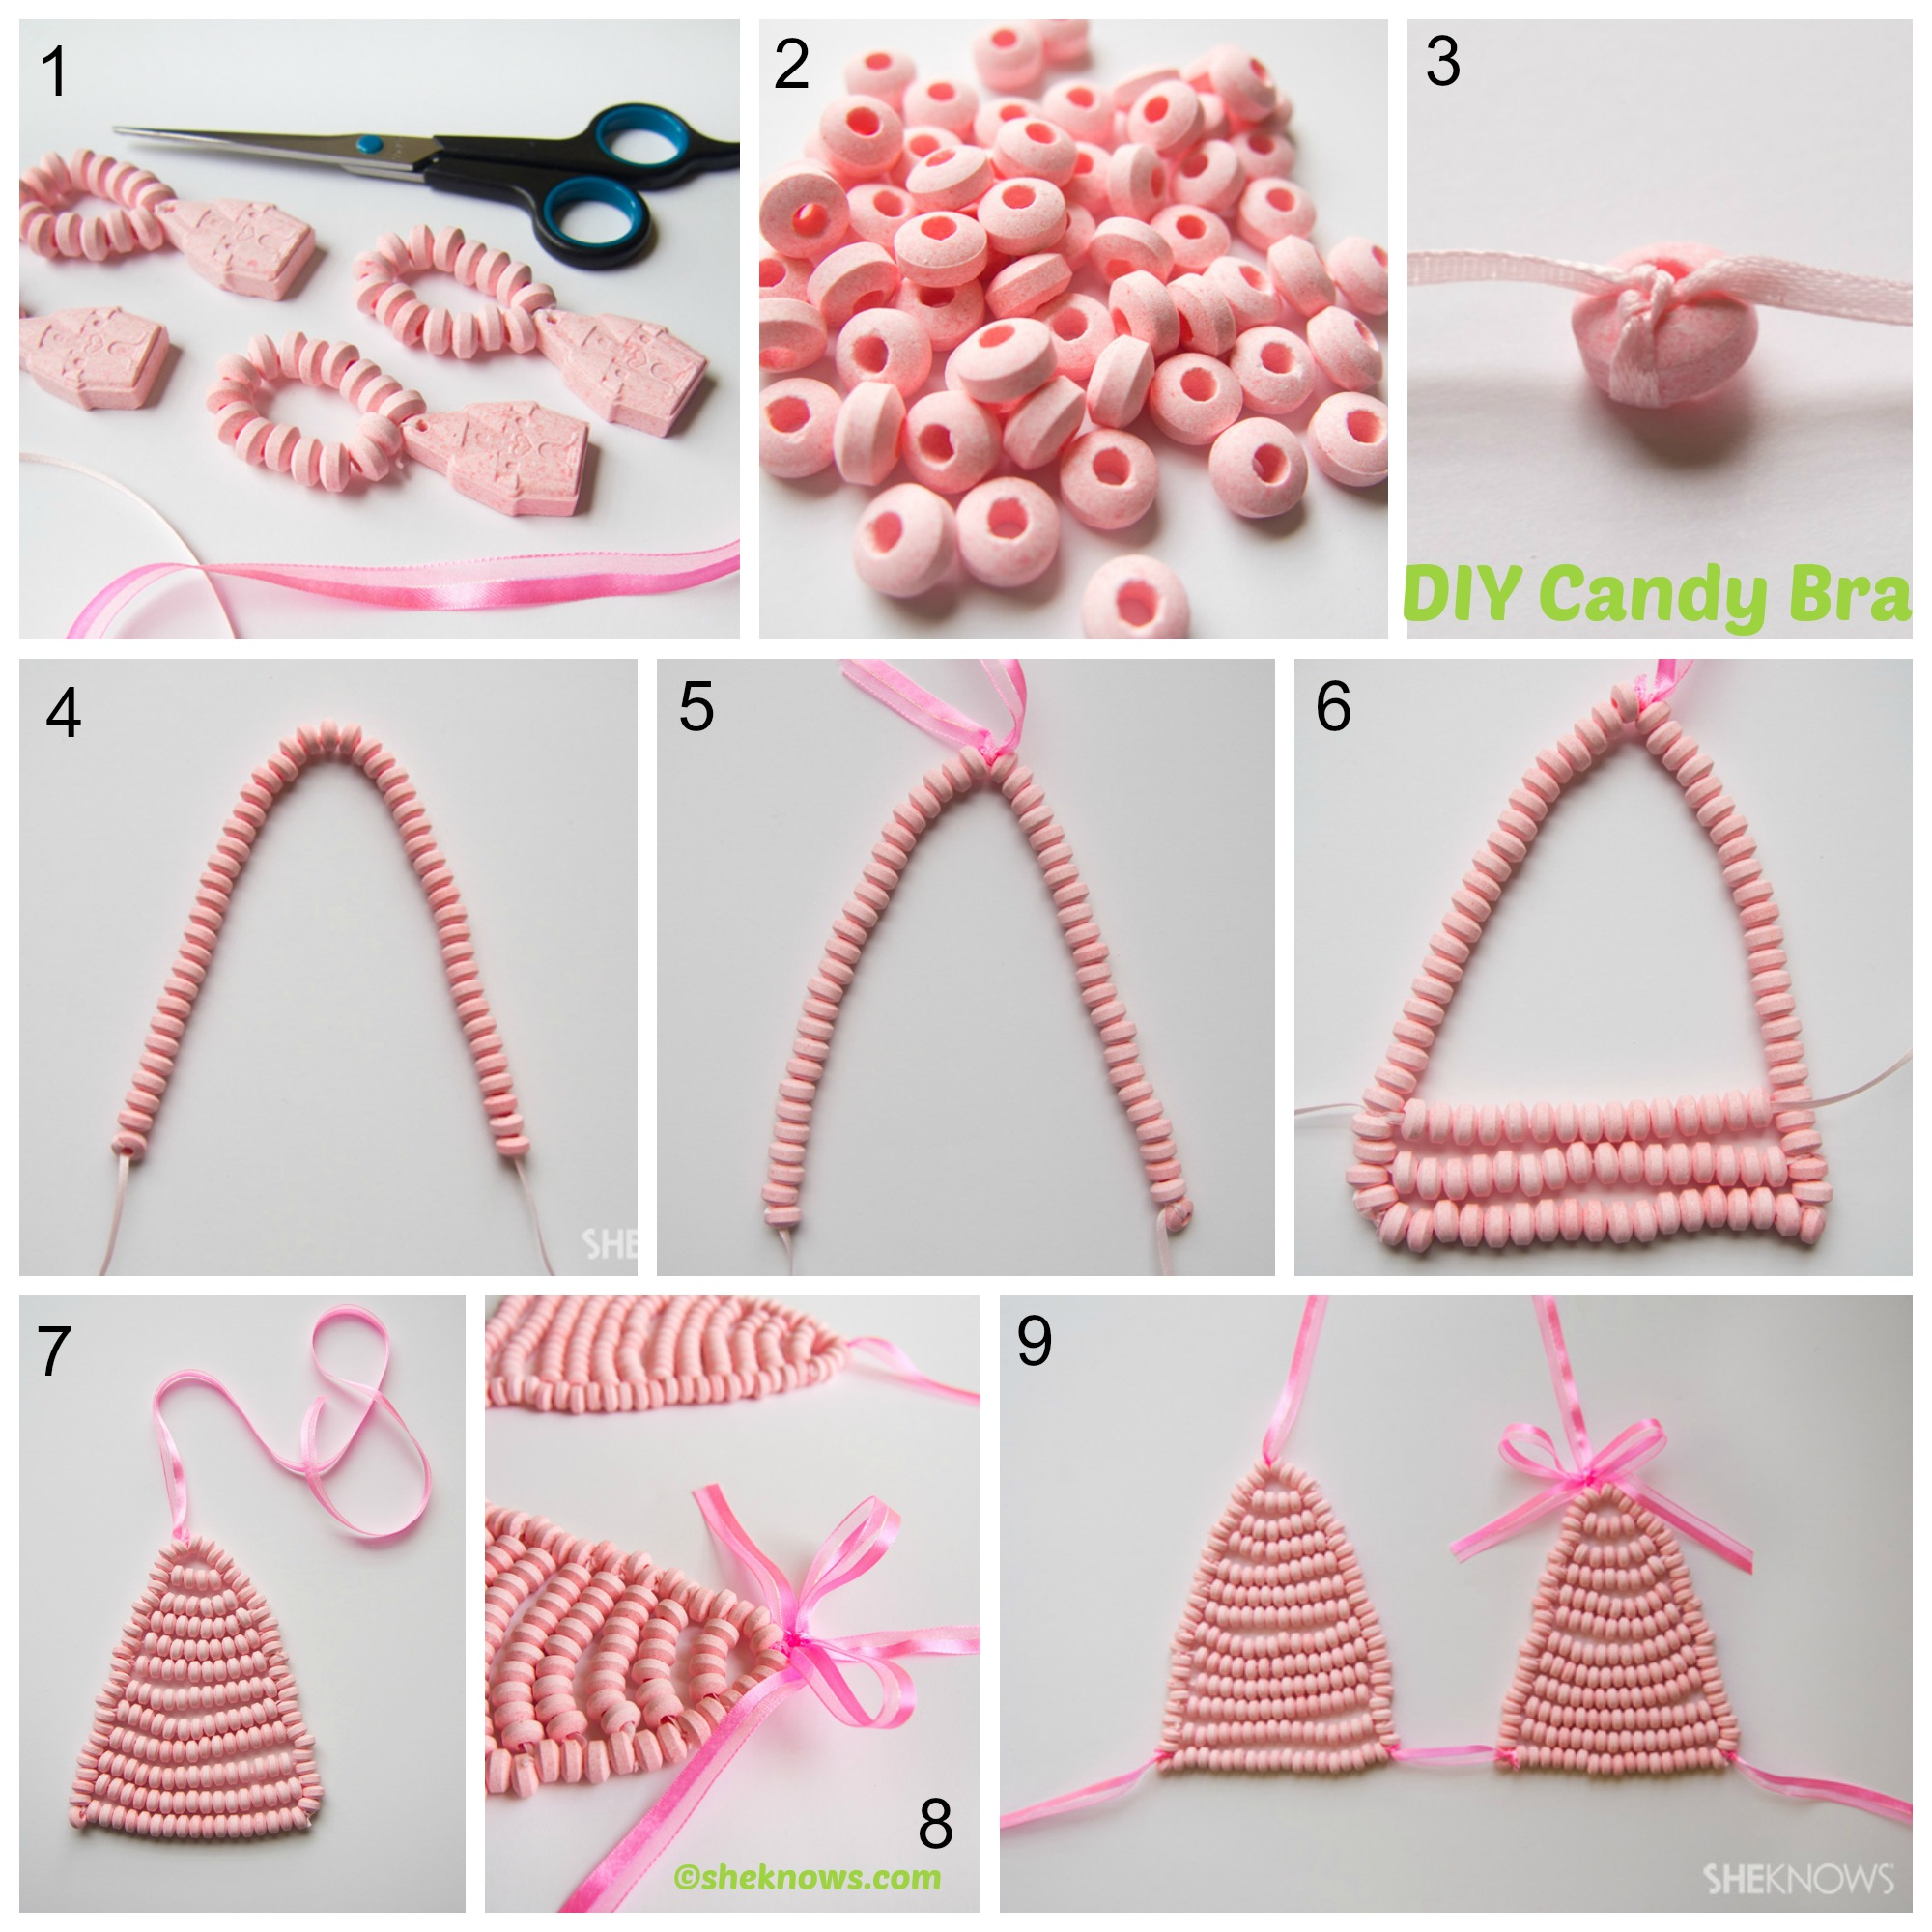 How to make a Candy Bra